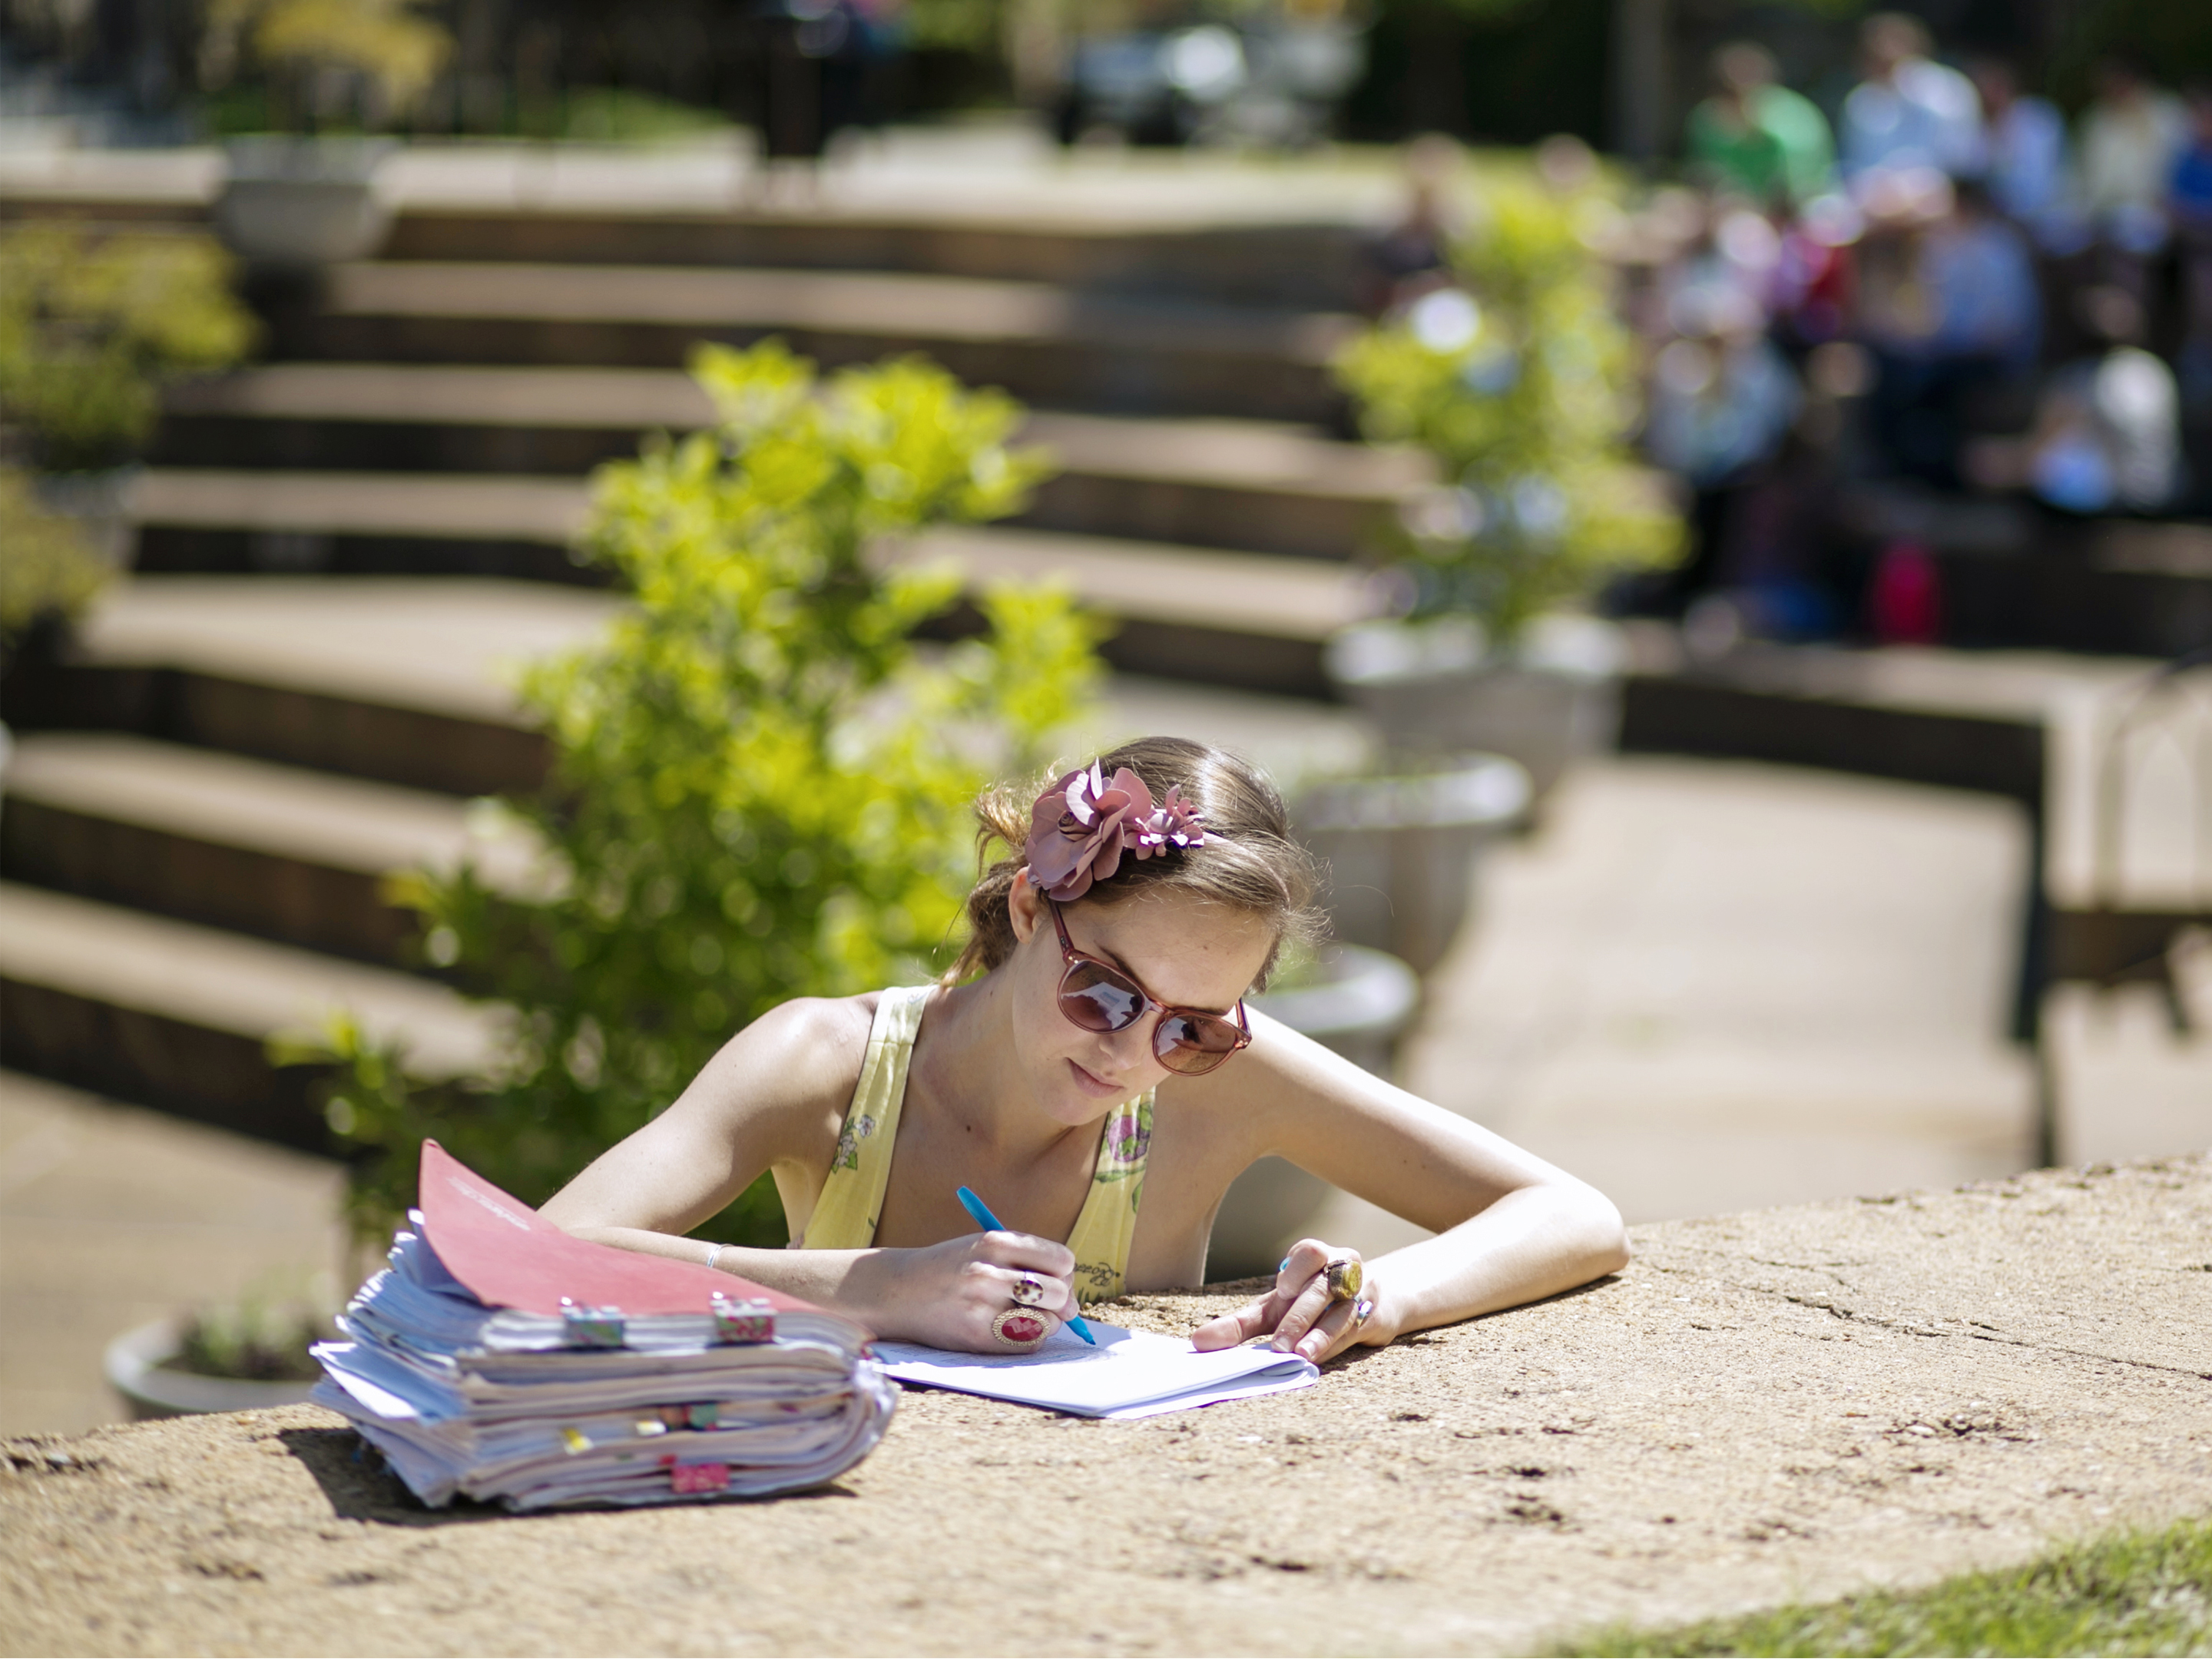 a student writing outside on some steps